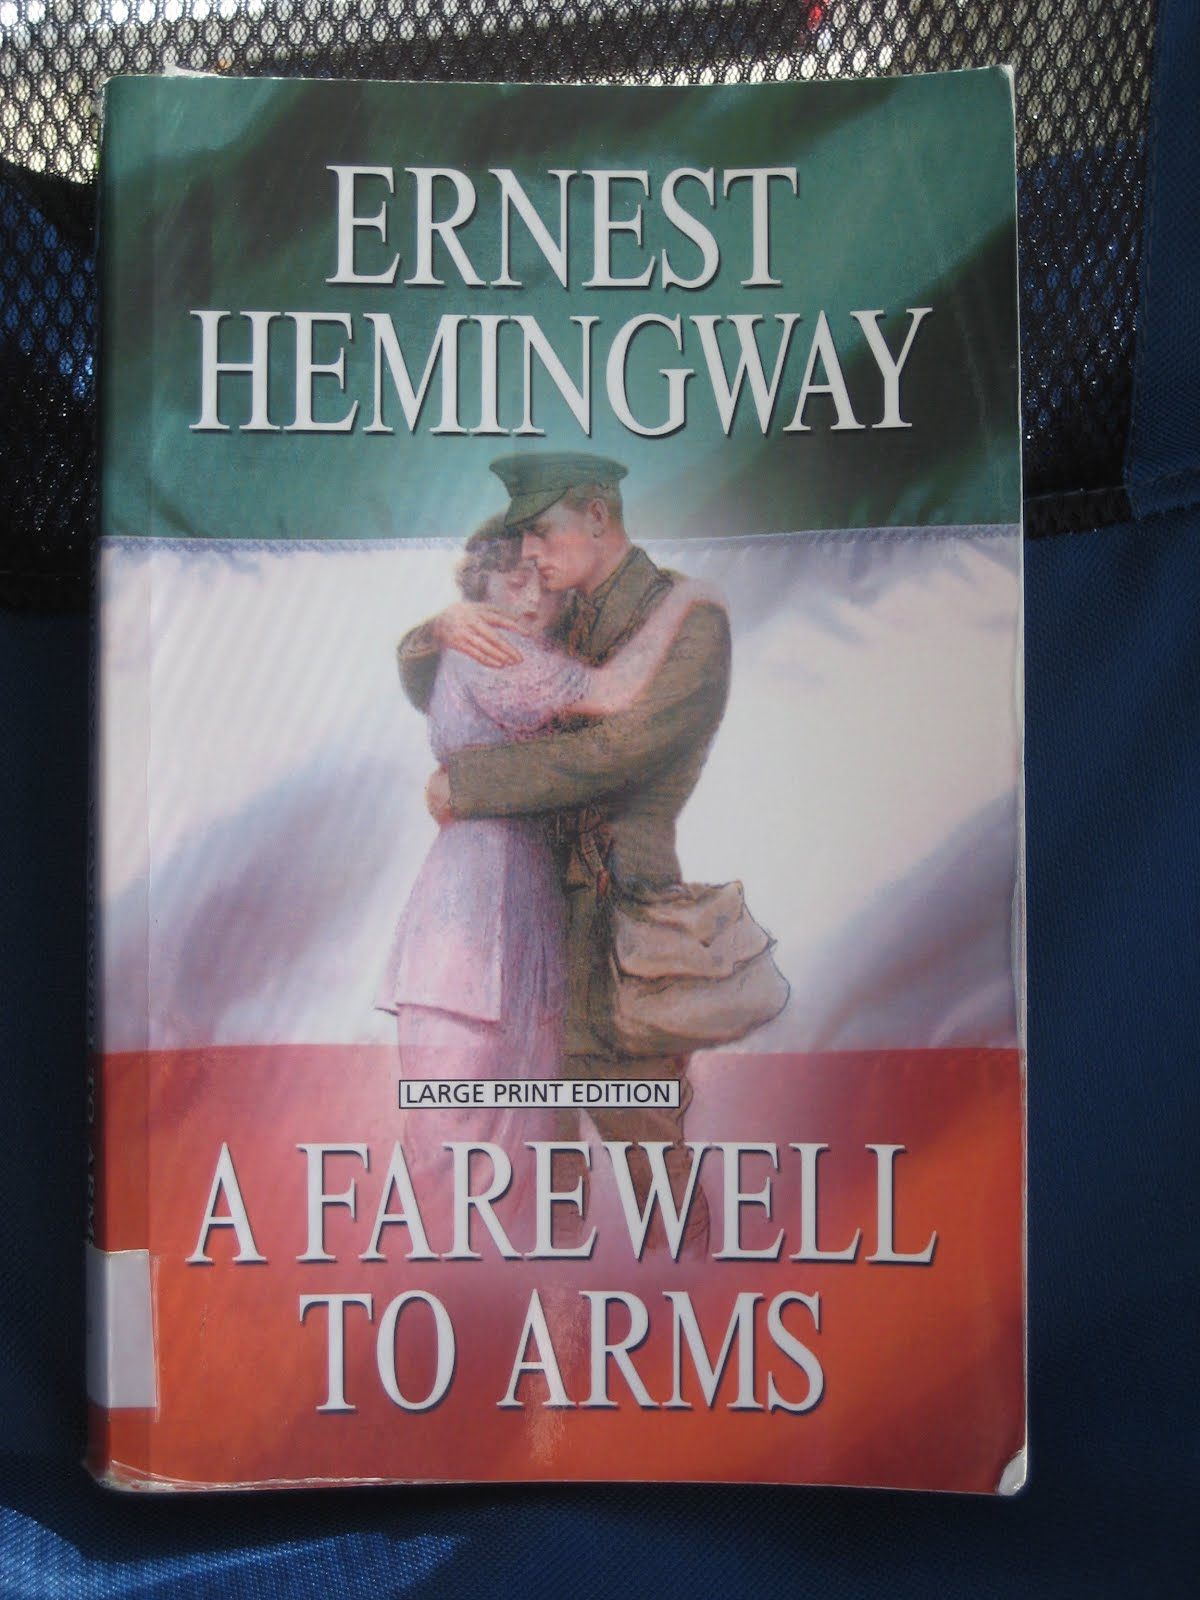 essay on a farewell to arms by ernest hemingway A farewell to arms the book a farewell to arms, written by ernest hemingway, is a classic about the love story of a nurse and a war ridden soldier the story starts as frederick henry is serving in the italian army he meets his future love in the hospital that he gets put in for various reasons.